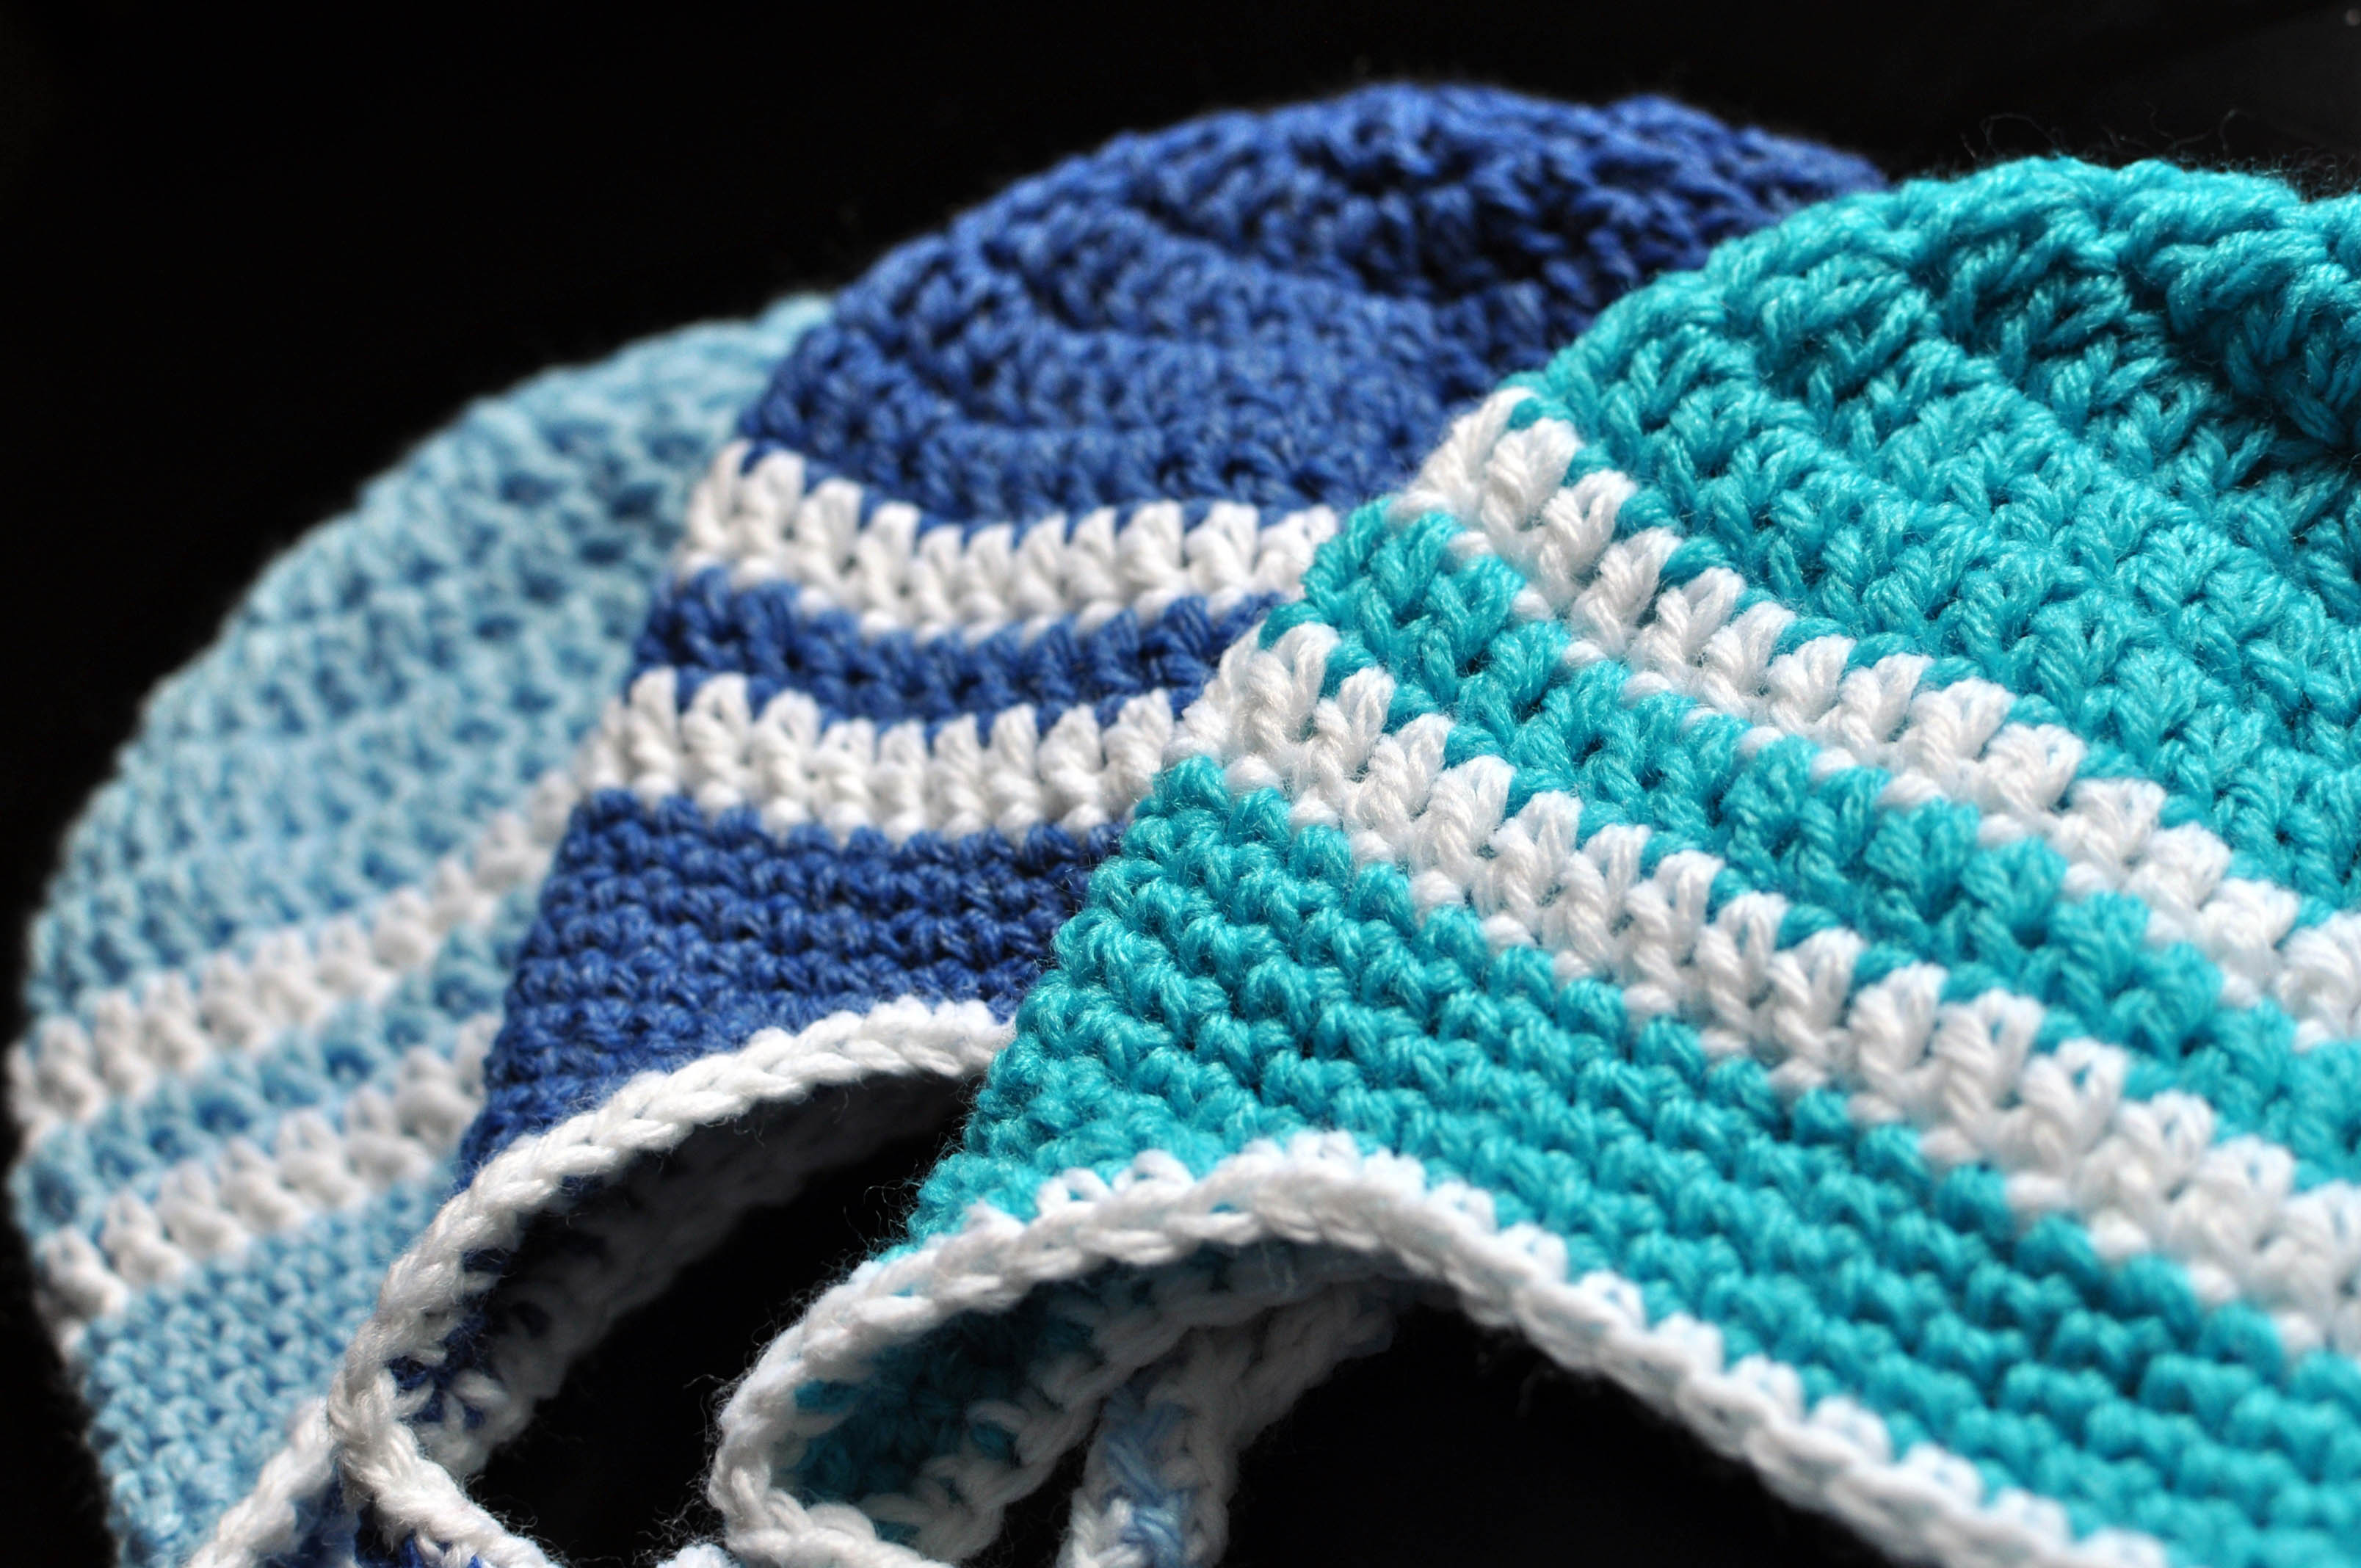 Free Download Of Crochet Patterns : Free Crochet Pattern: Striped Earflap Hat Classy Crochet